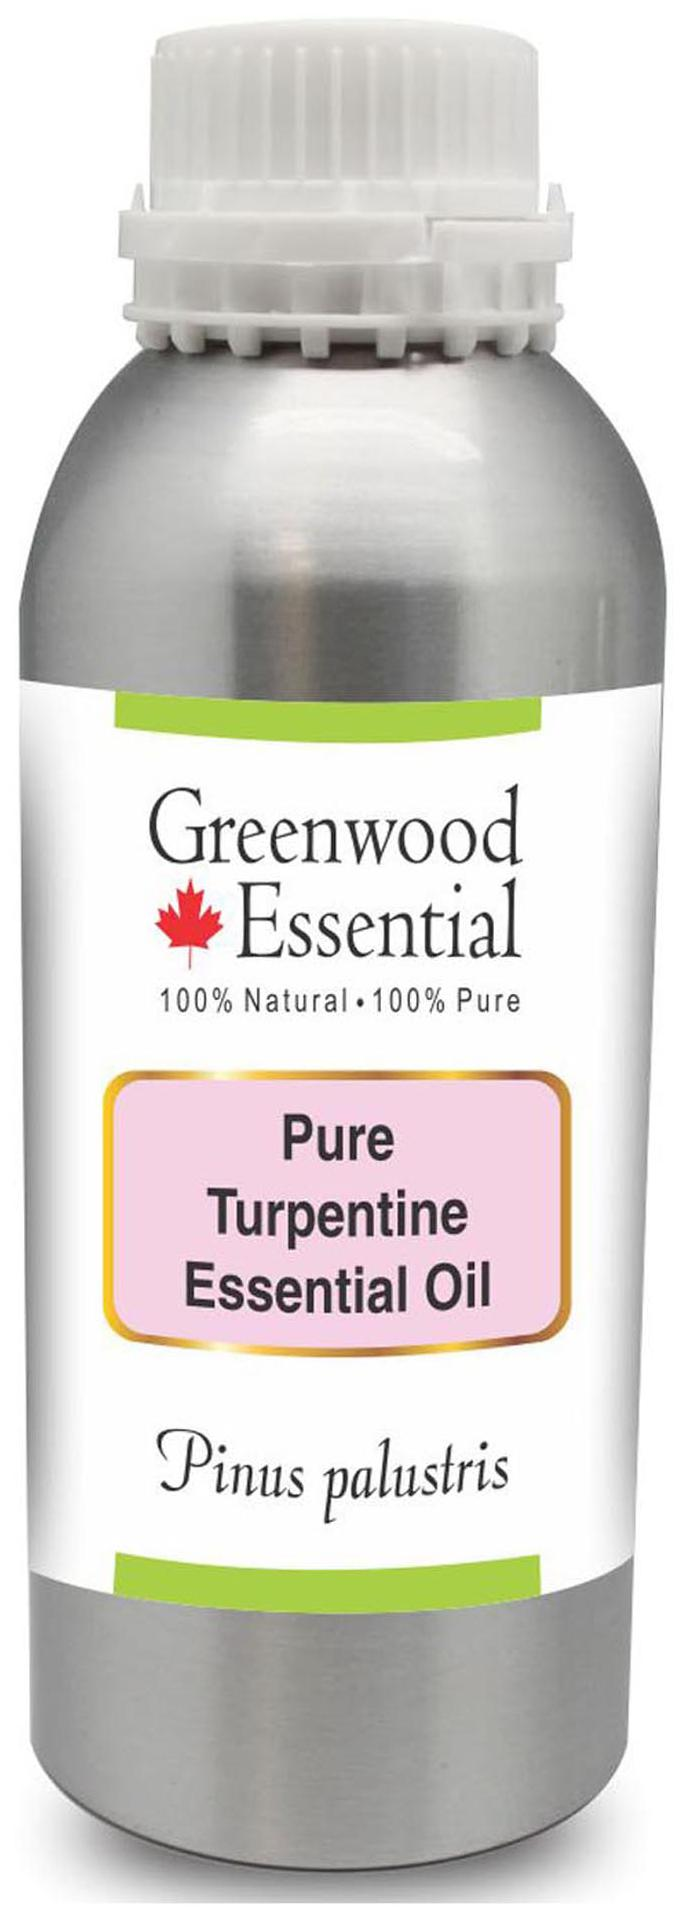 Greenwood Essential Pure Turpentine Essential Oil (Pinus palustris) 100%  Natural Therapeutic Grade Steam Distilled 300ml